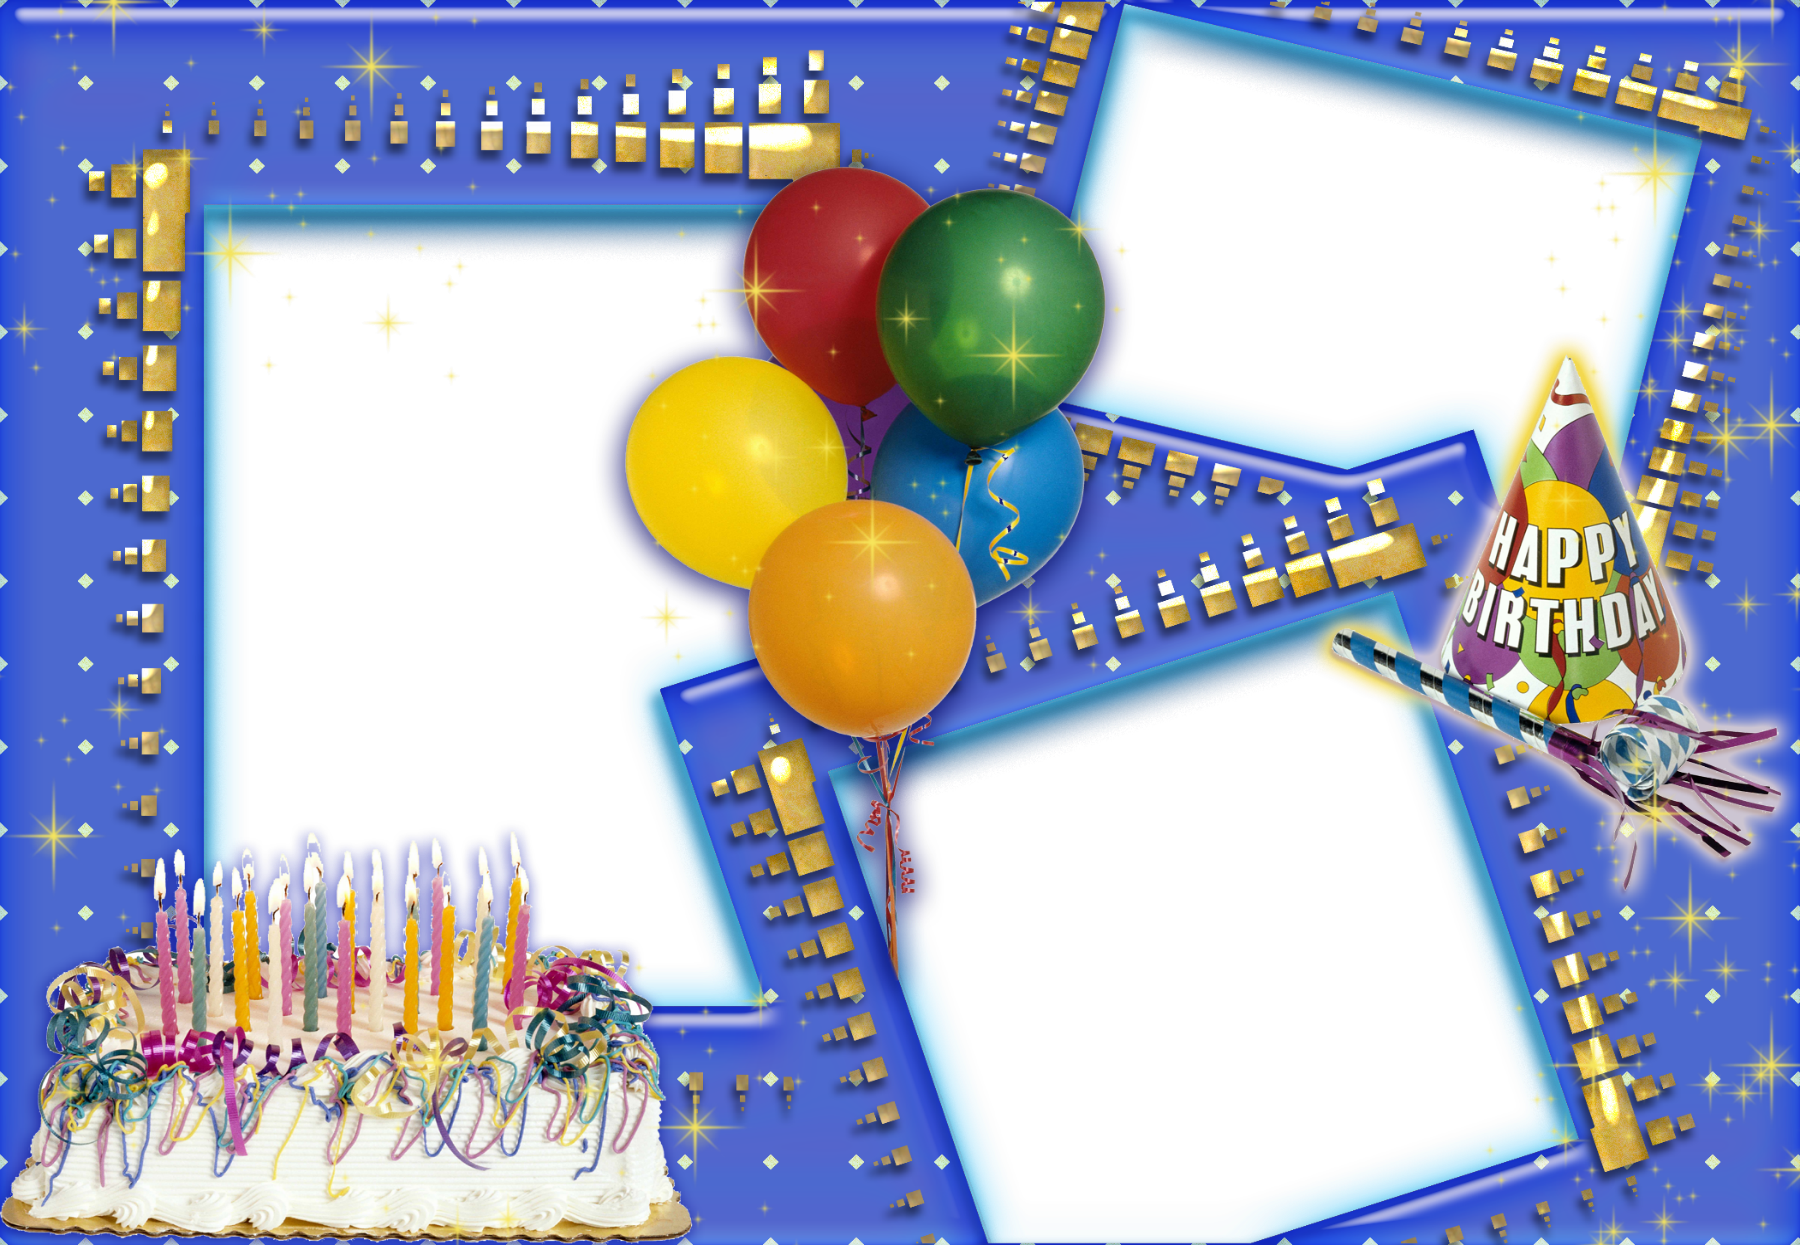 Happy birthday frames and borders png. Efecto de fotos la